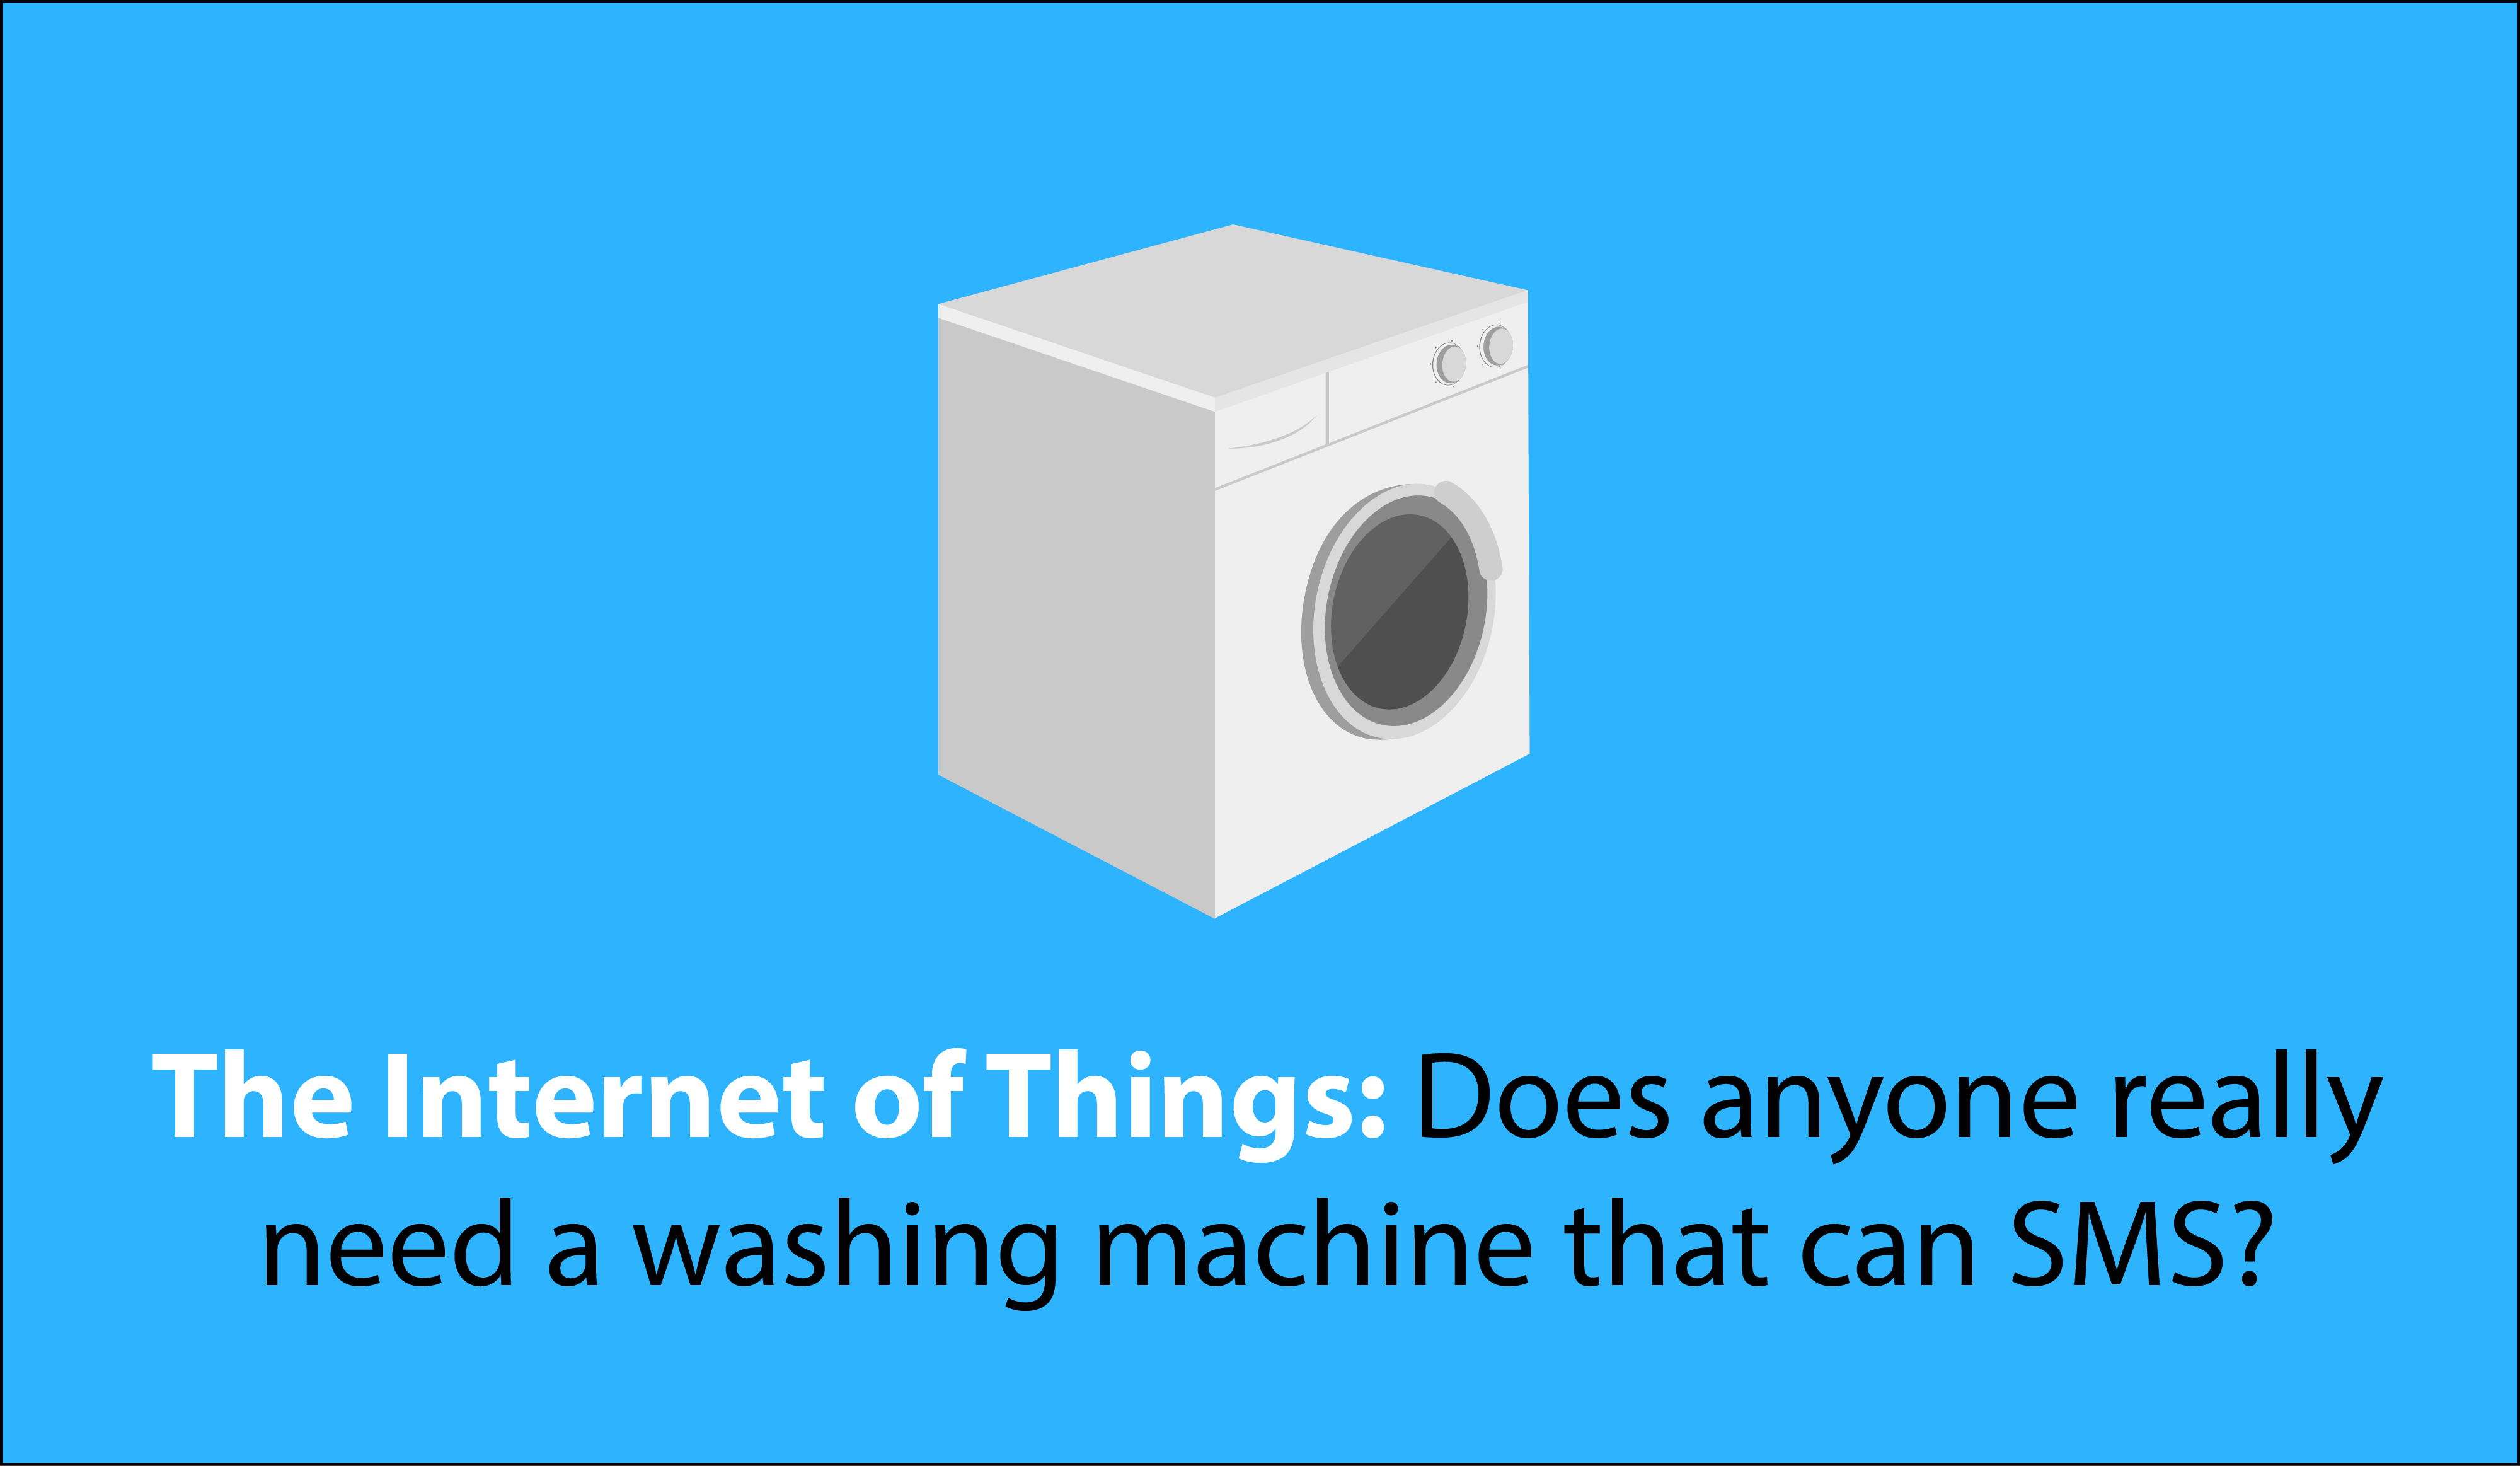 The Internet of Things: Washing Machines that can SMS?